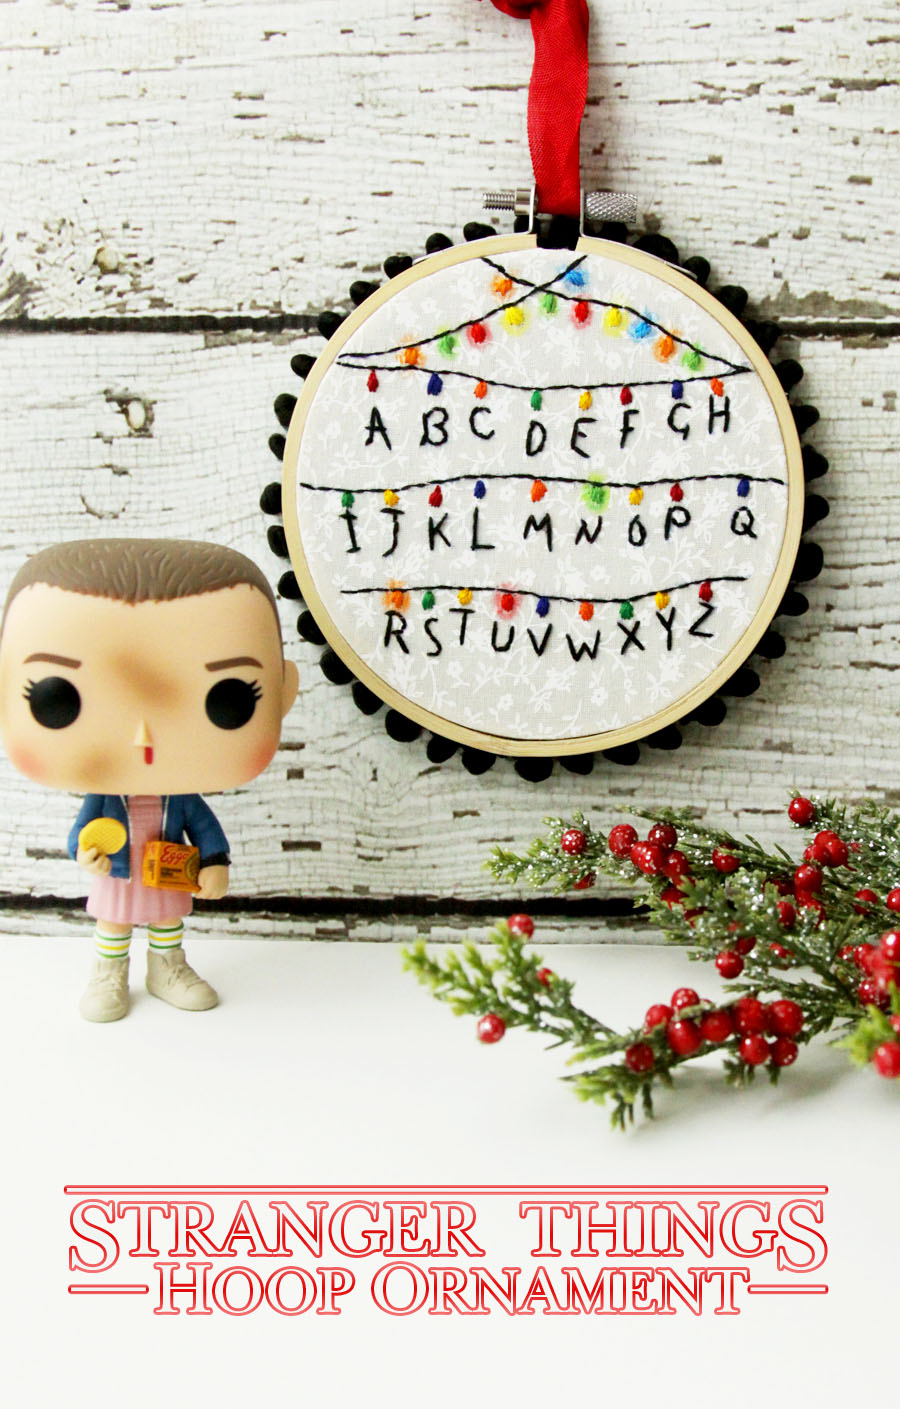 Stranger Things Hoop Ornament | Fabulous and Fun DIY Christmas Ornaments by popular Tennessee craft blog, Flamingo Toes: image of Stranger Things hoop ornament.